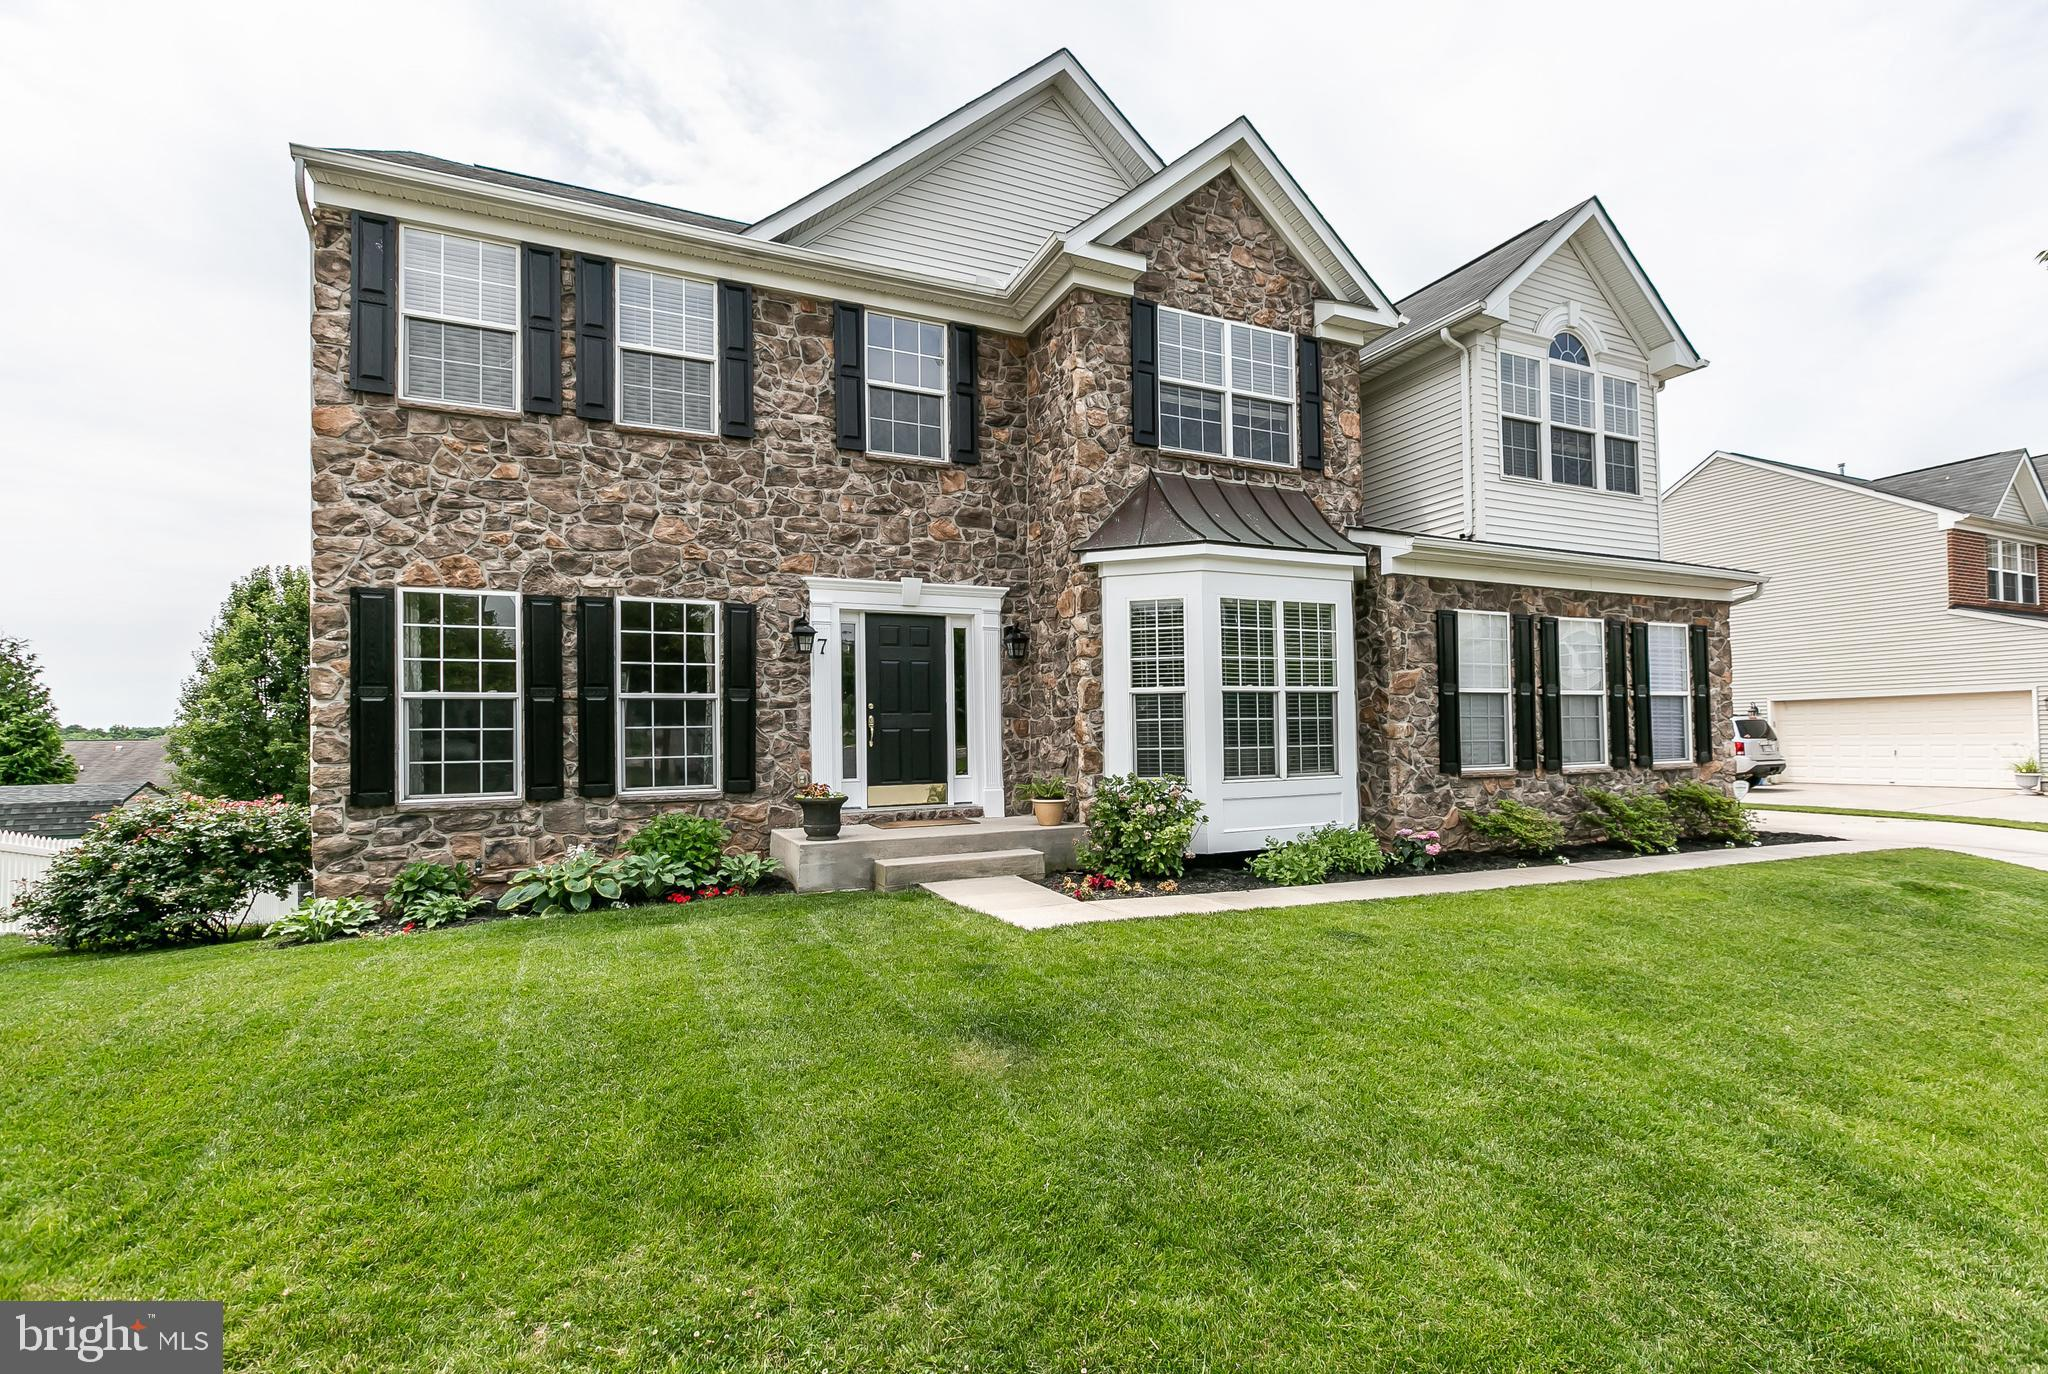 7 AUTUMN GLOW COURT, PERRY HALL, MD 21128